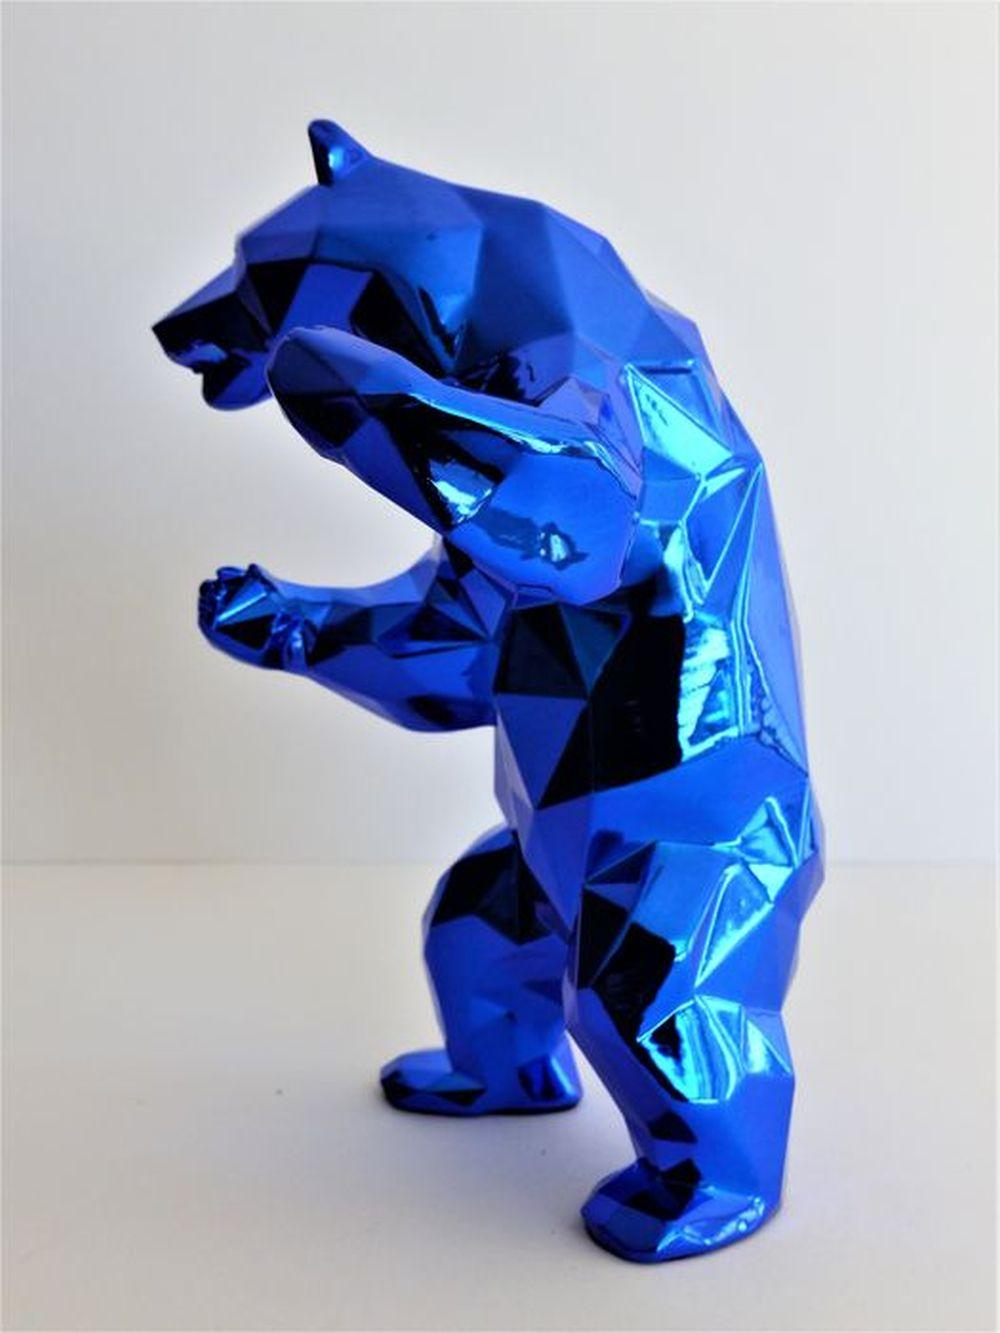 Richard Orlinski - Bear Spirit (Blue Edition), 2018